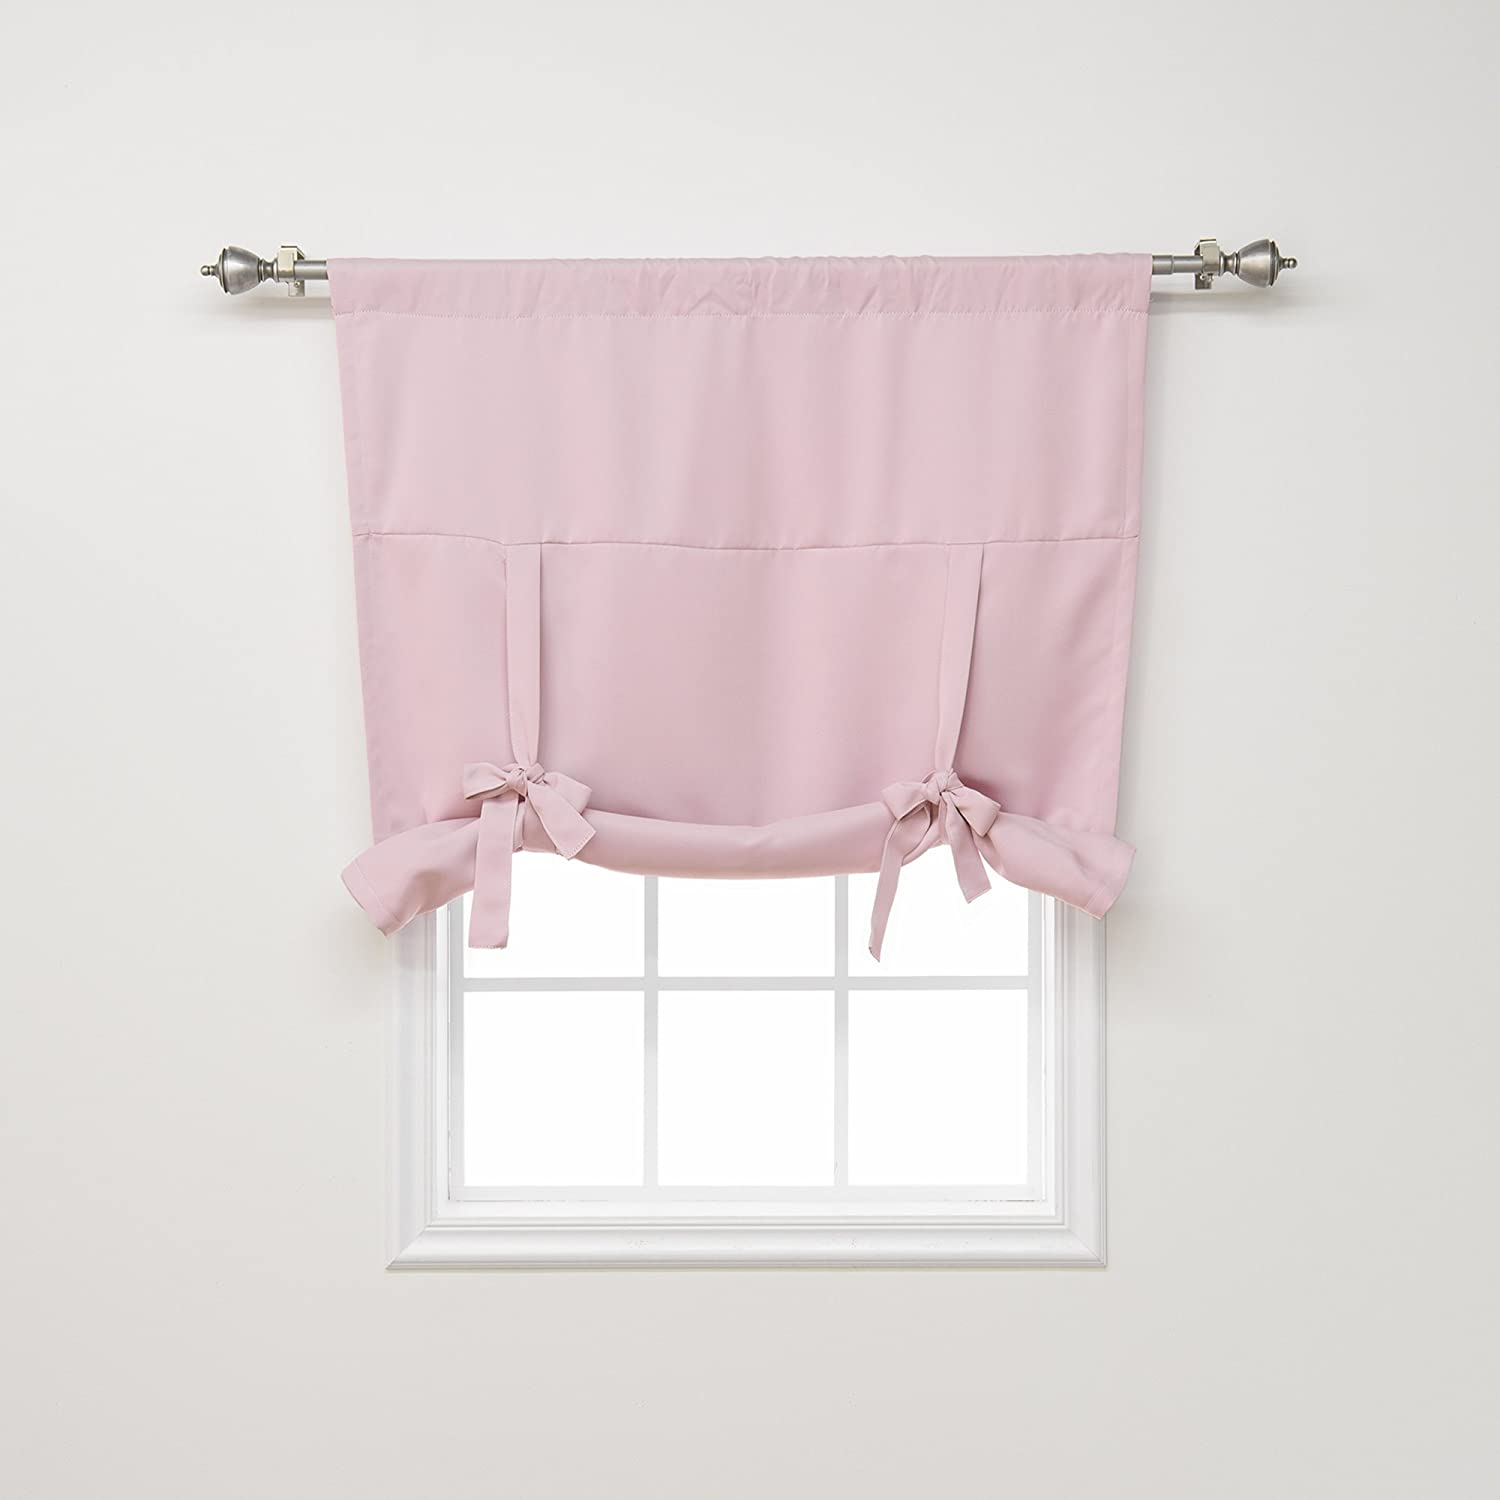 Best Home Fashion Premium Thermal Insulated Blackout Tie-Up Window Shade - Light Pink - 42